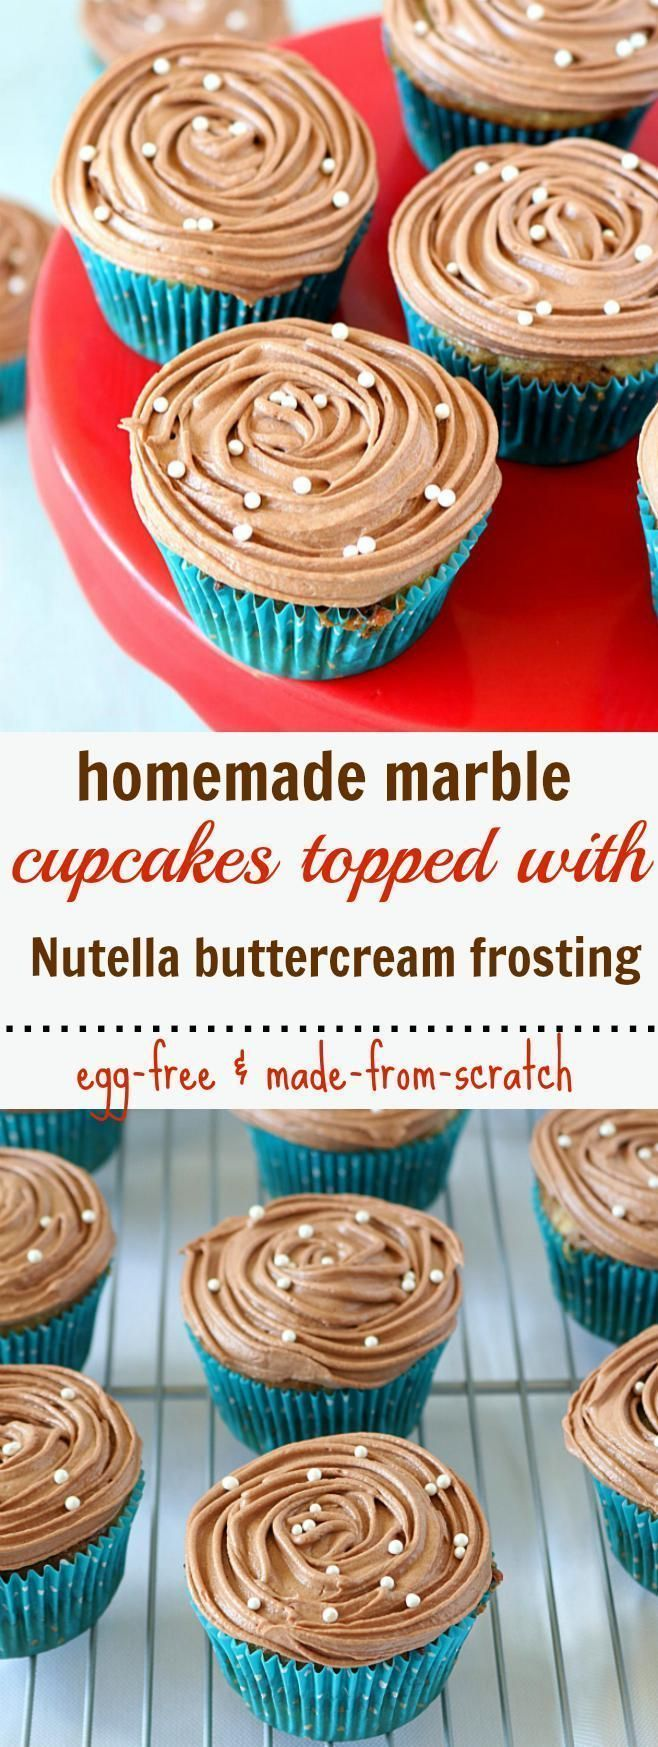 Eggless Marble Cupcakes topped with homemade nutella buttercream frosting is a true indulgence. Perfectly sweet, tender and super moist in every bite.